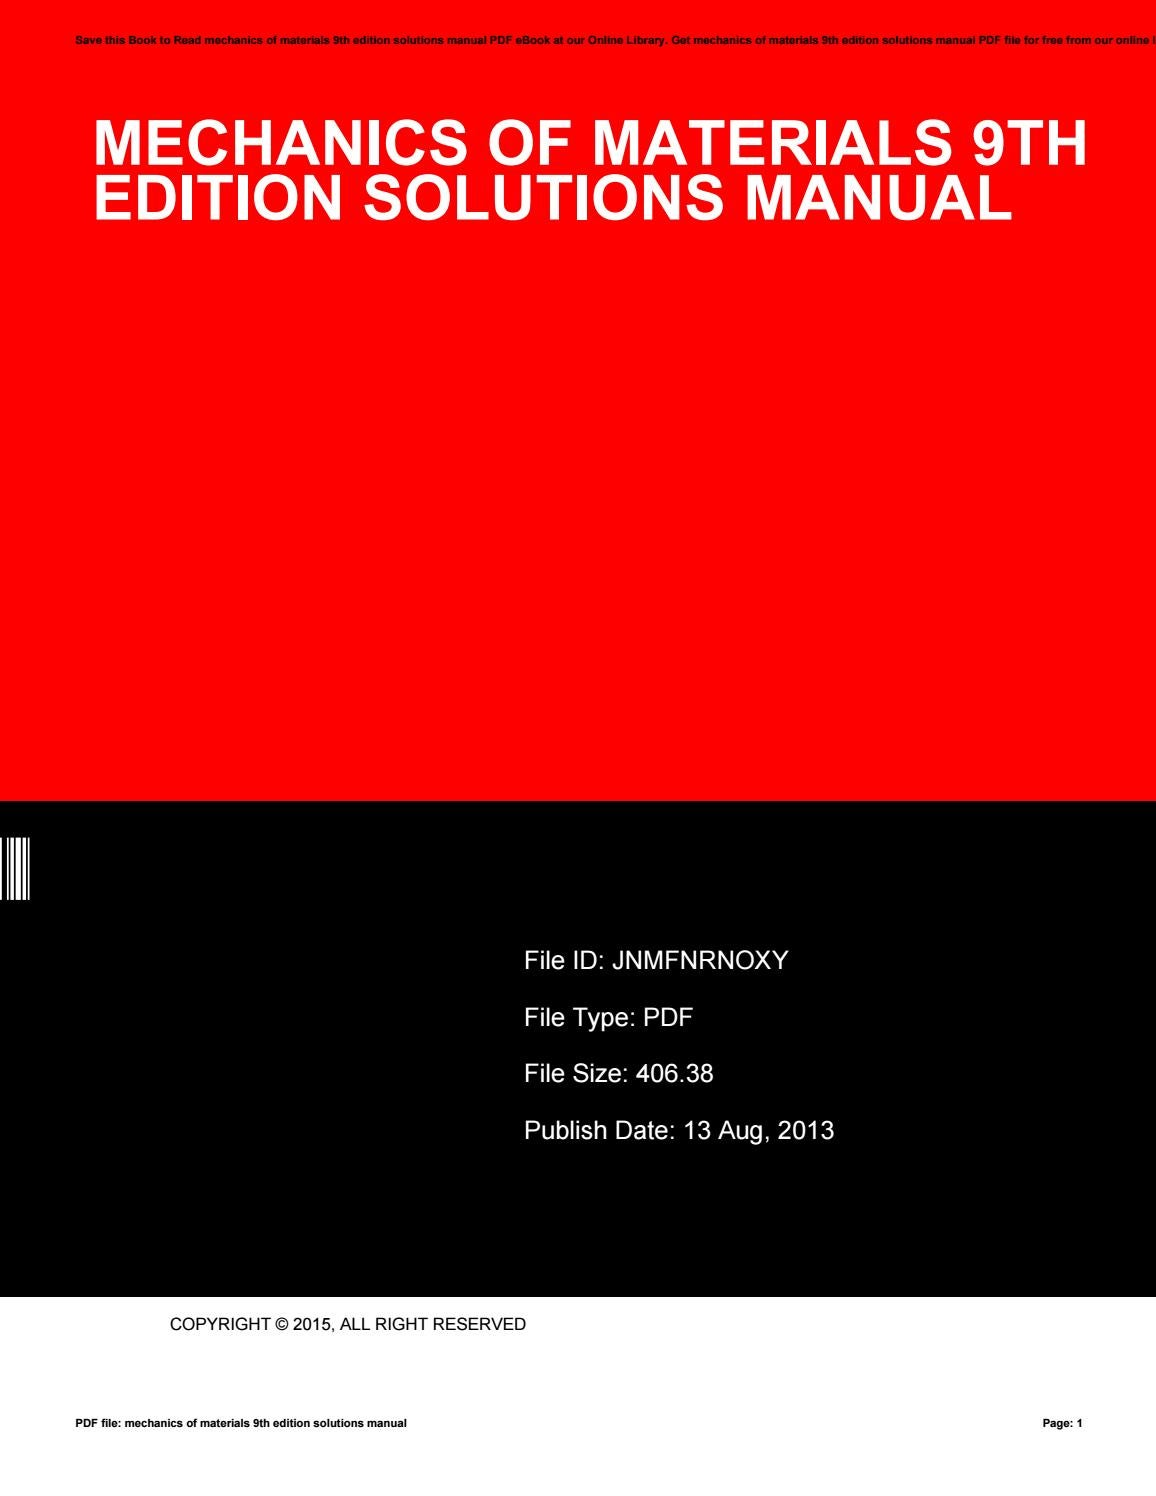 Mechanics of materials 9th edition solutions manual by MariaWeishaar4148 -  issuu